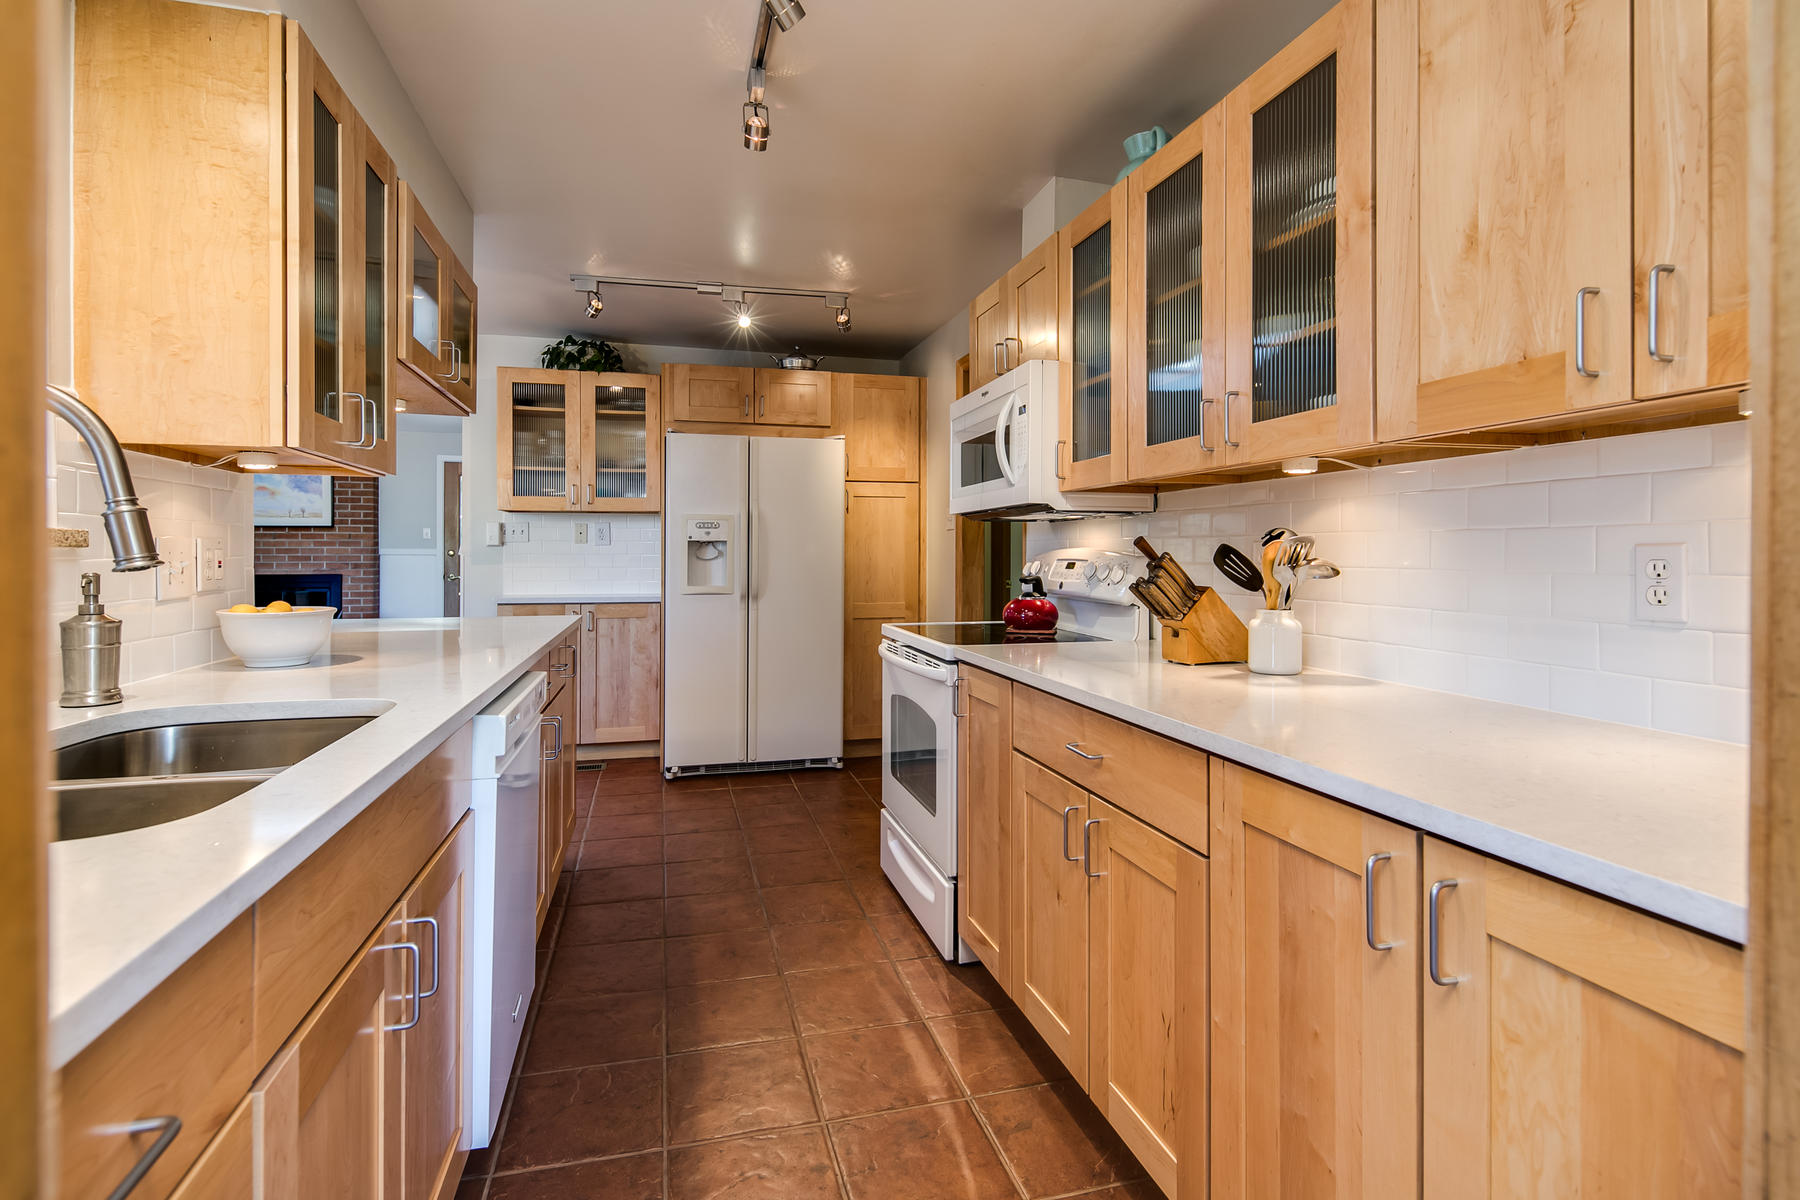 Additional photo for property listing at Beautiful Mid Century Ranch In Applewood Knolls On A Quiet Street 11320 W 25th Pl Lakewood, Colorado 80215 United States